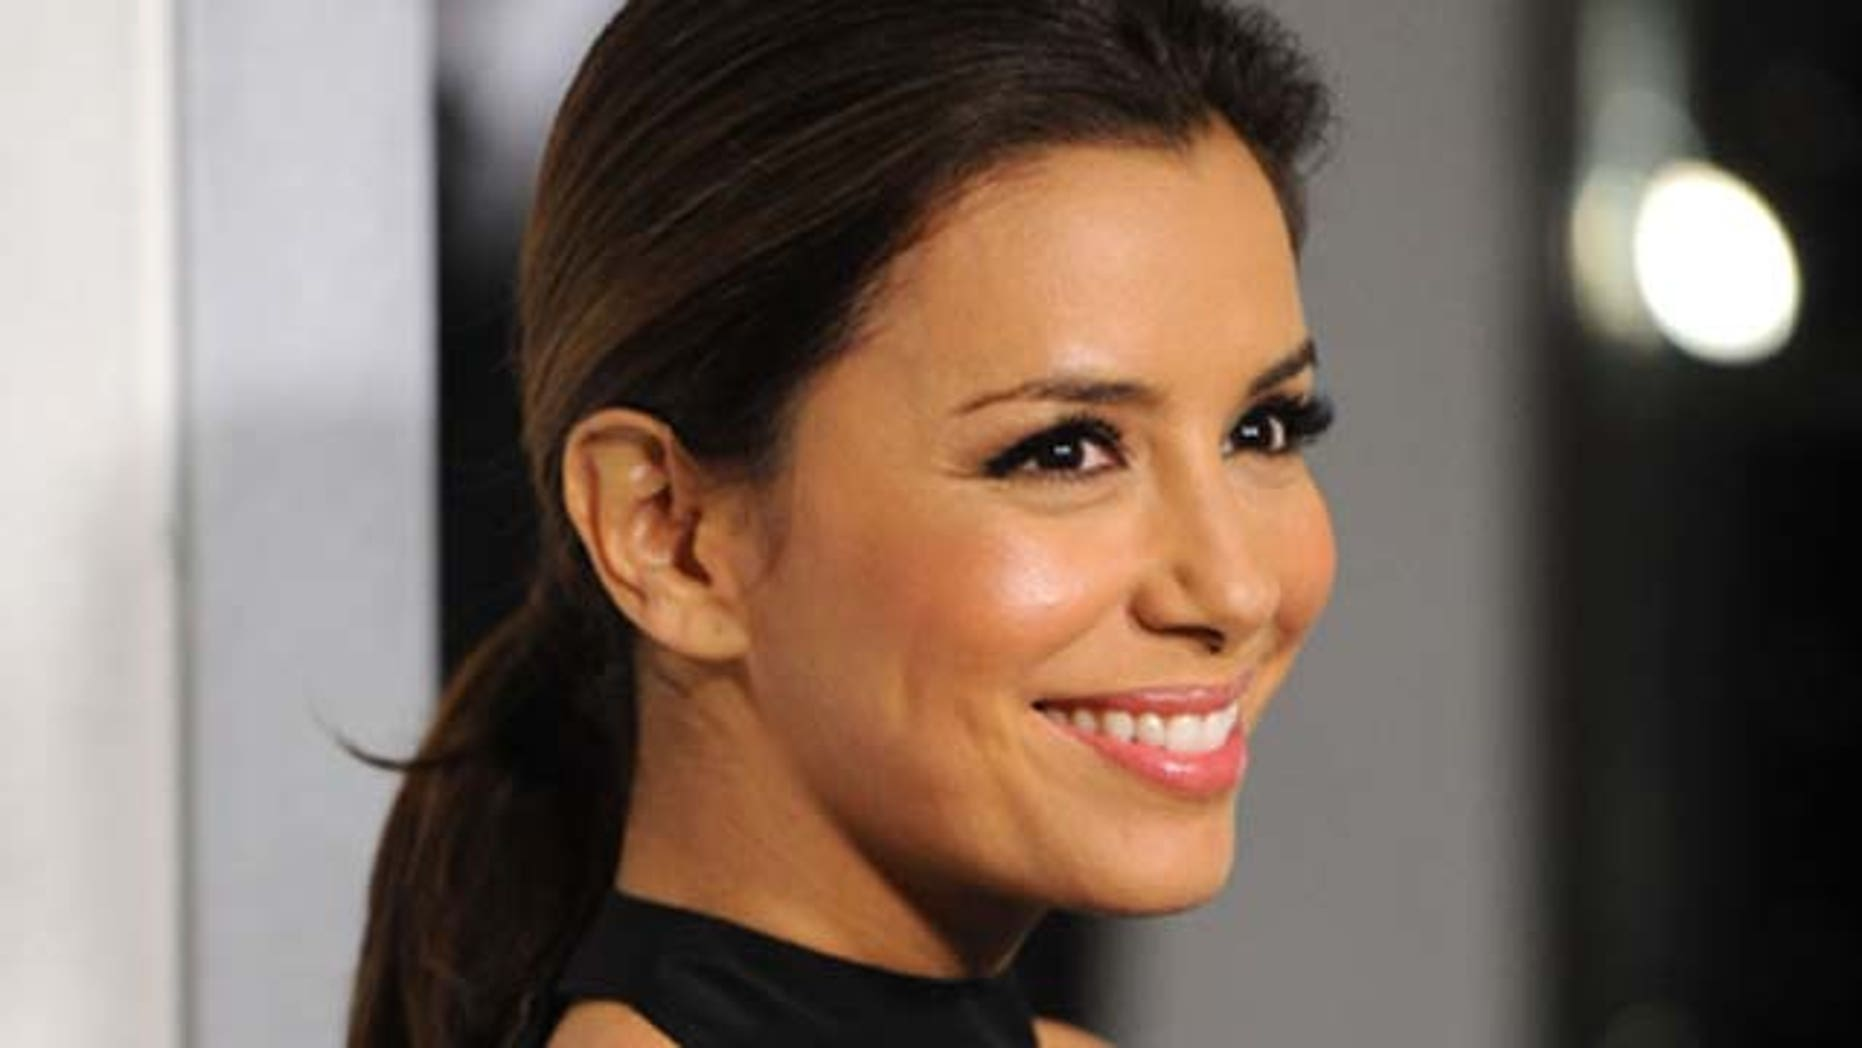 February 24, 2011: Actress Eva Longoria arrives at the Tom Ford Beverly Hills Flagship Store Opening on Rodeo Drive in Beverly Hills, Calif.